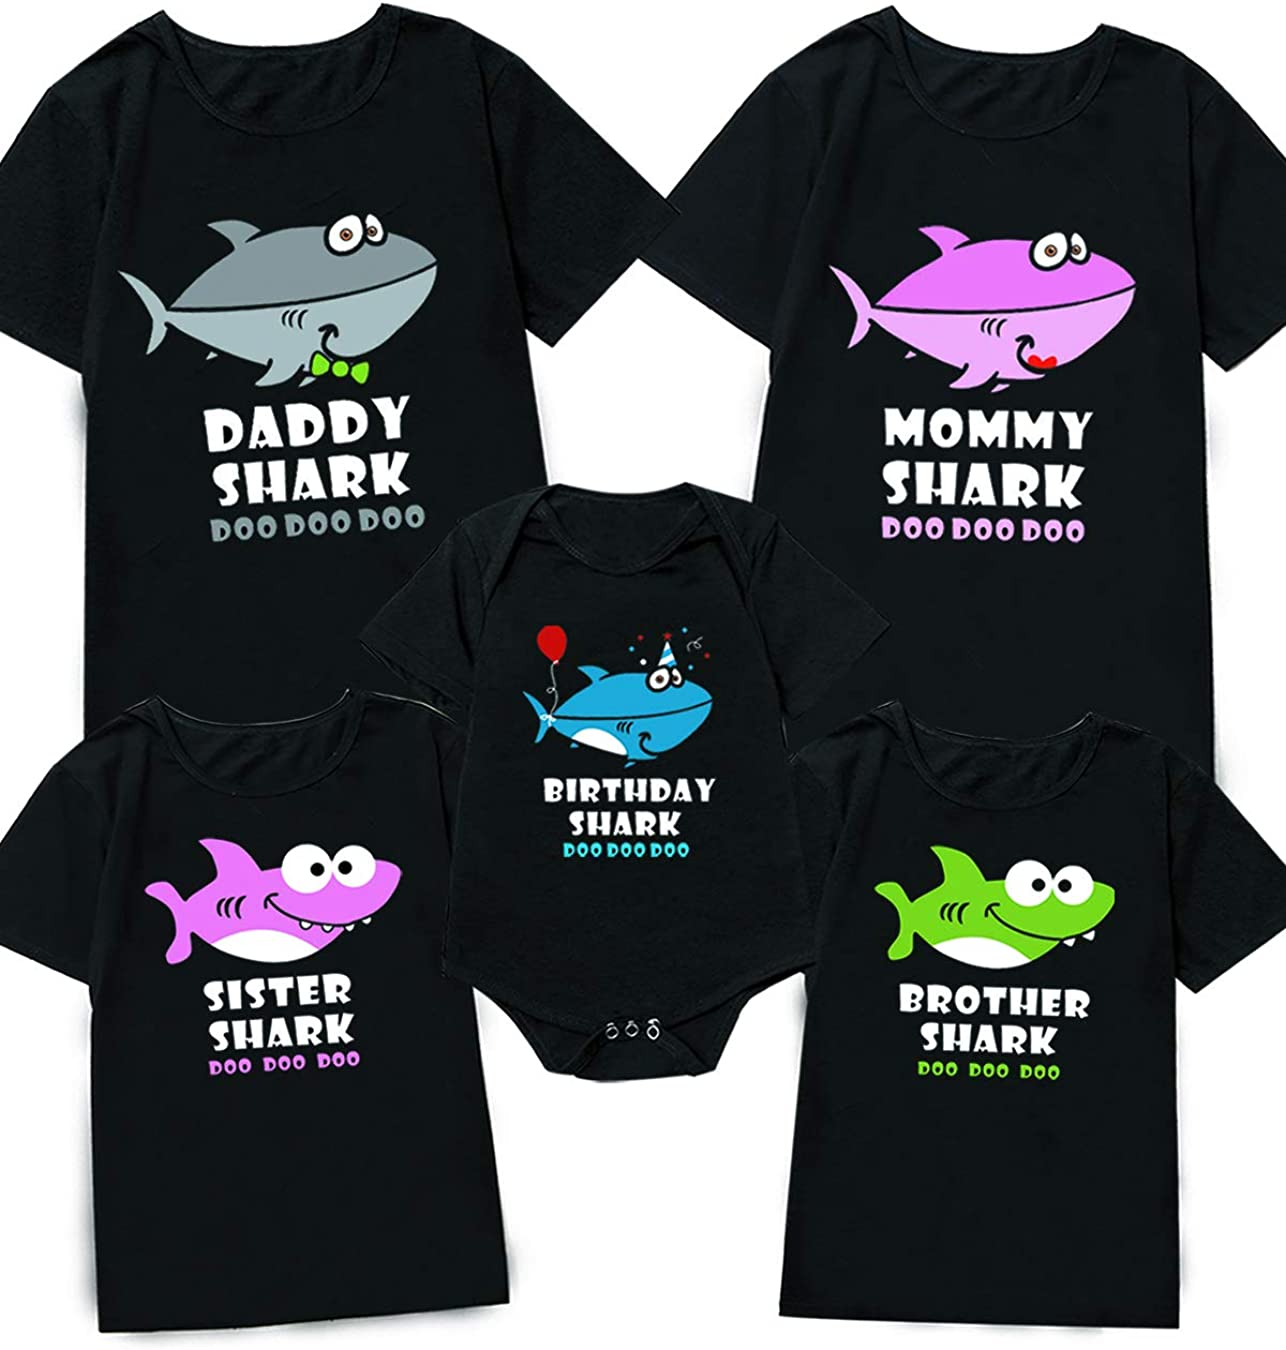 Minseng Direct Family Matching Shirts Funny Mommy Shark Tee for Women (Black,XL)